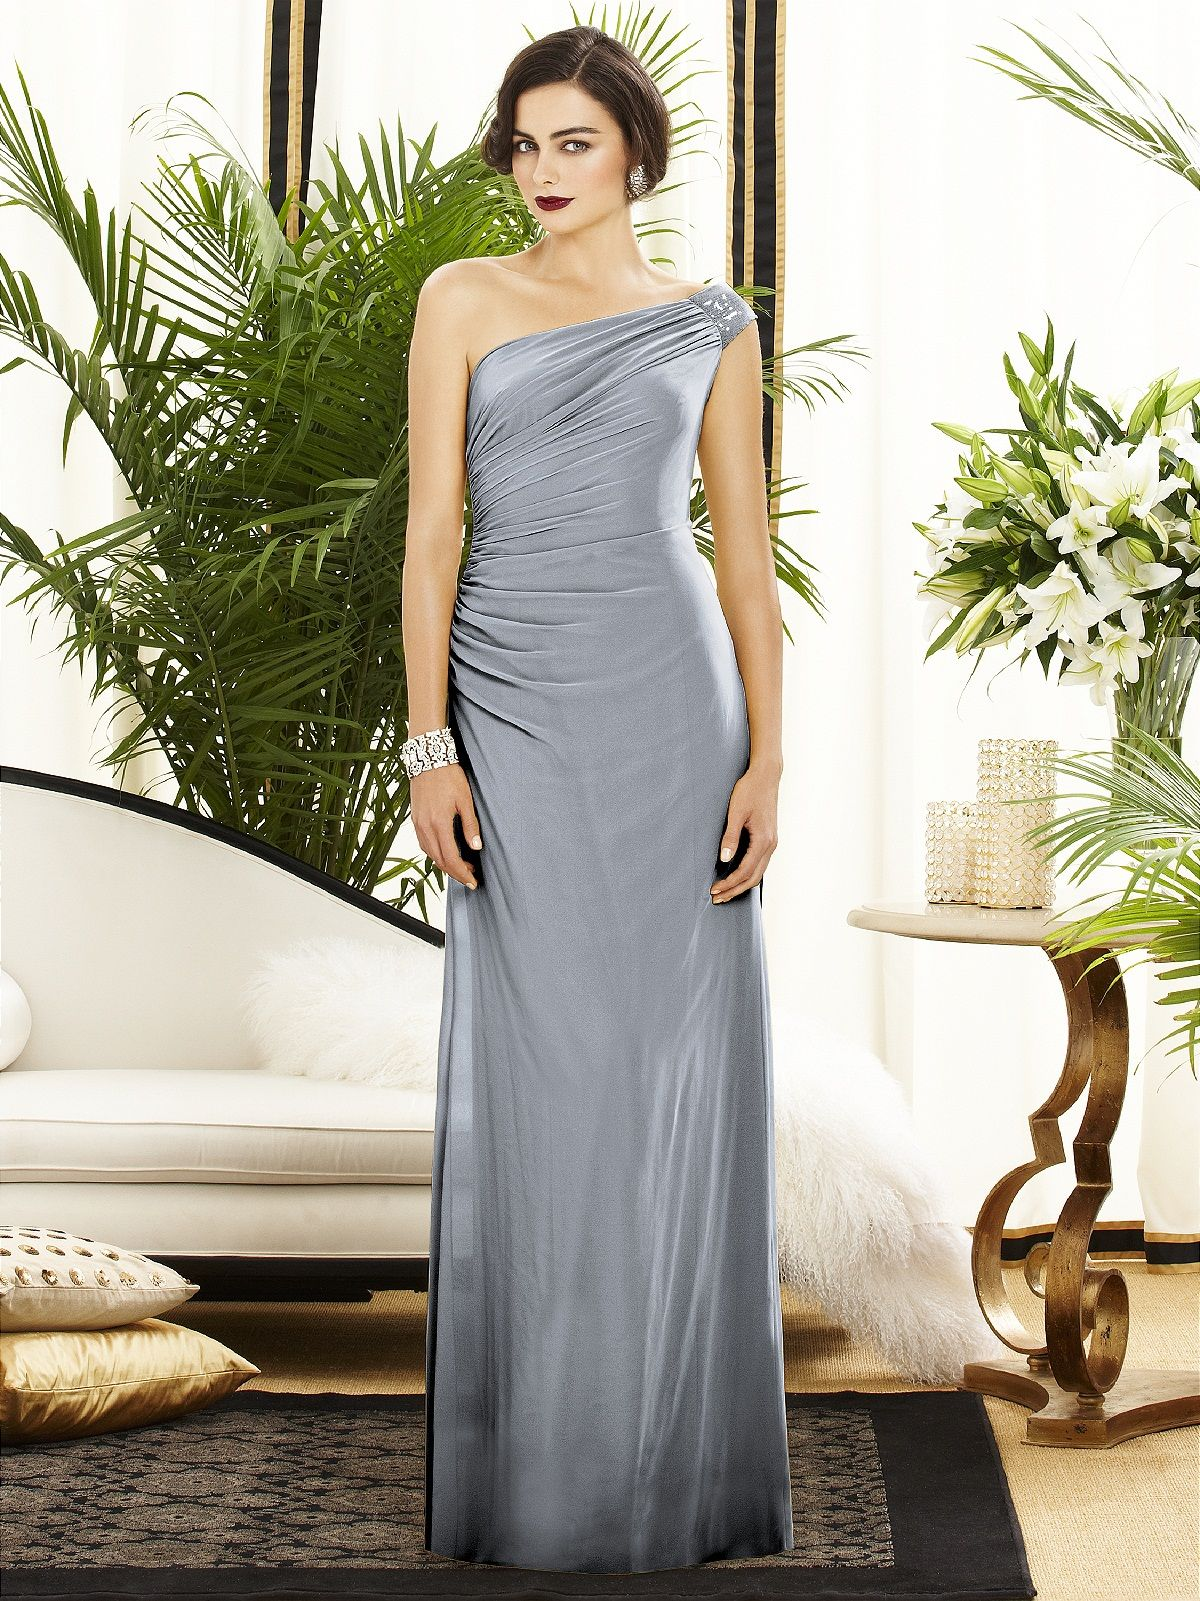 Dessy collection style 2884 fabric lux chiffon purchase swatch dessy collection style 2884 fabric lux chiffon purchase swatch full length one shoulder lux chiffon dress w draped bodice and covered sequin detail at ombrellifo Choice Image